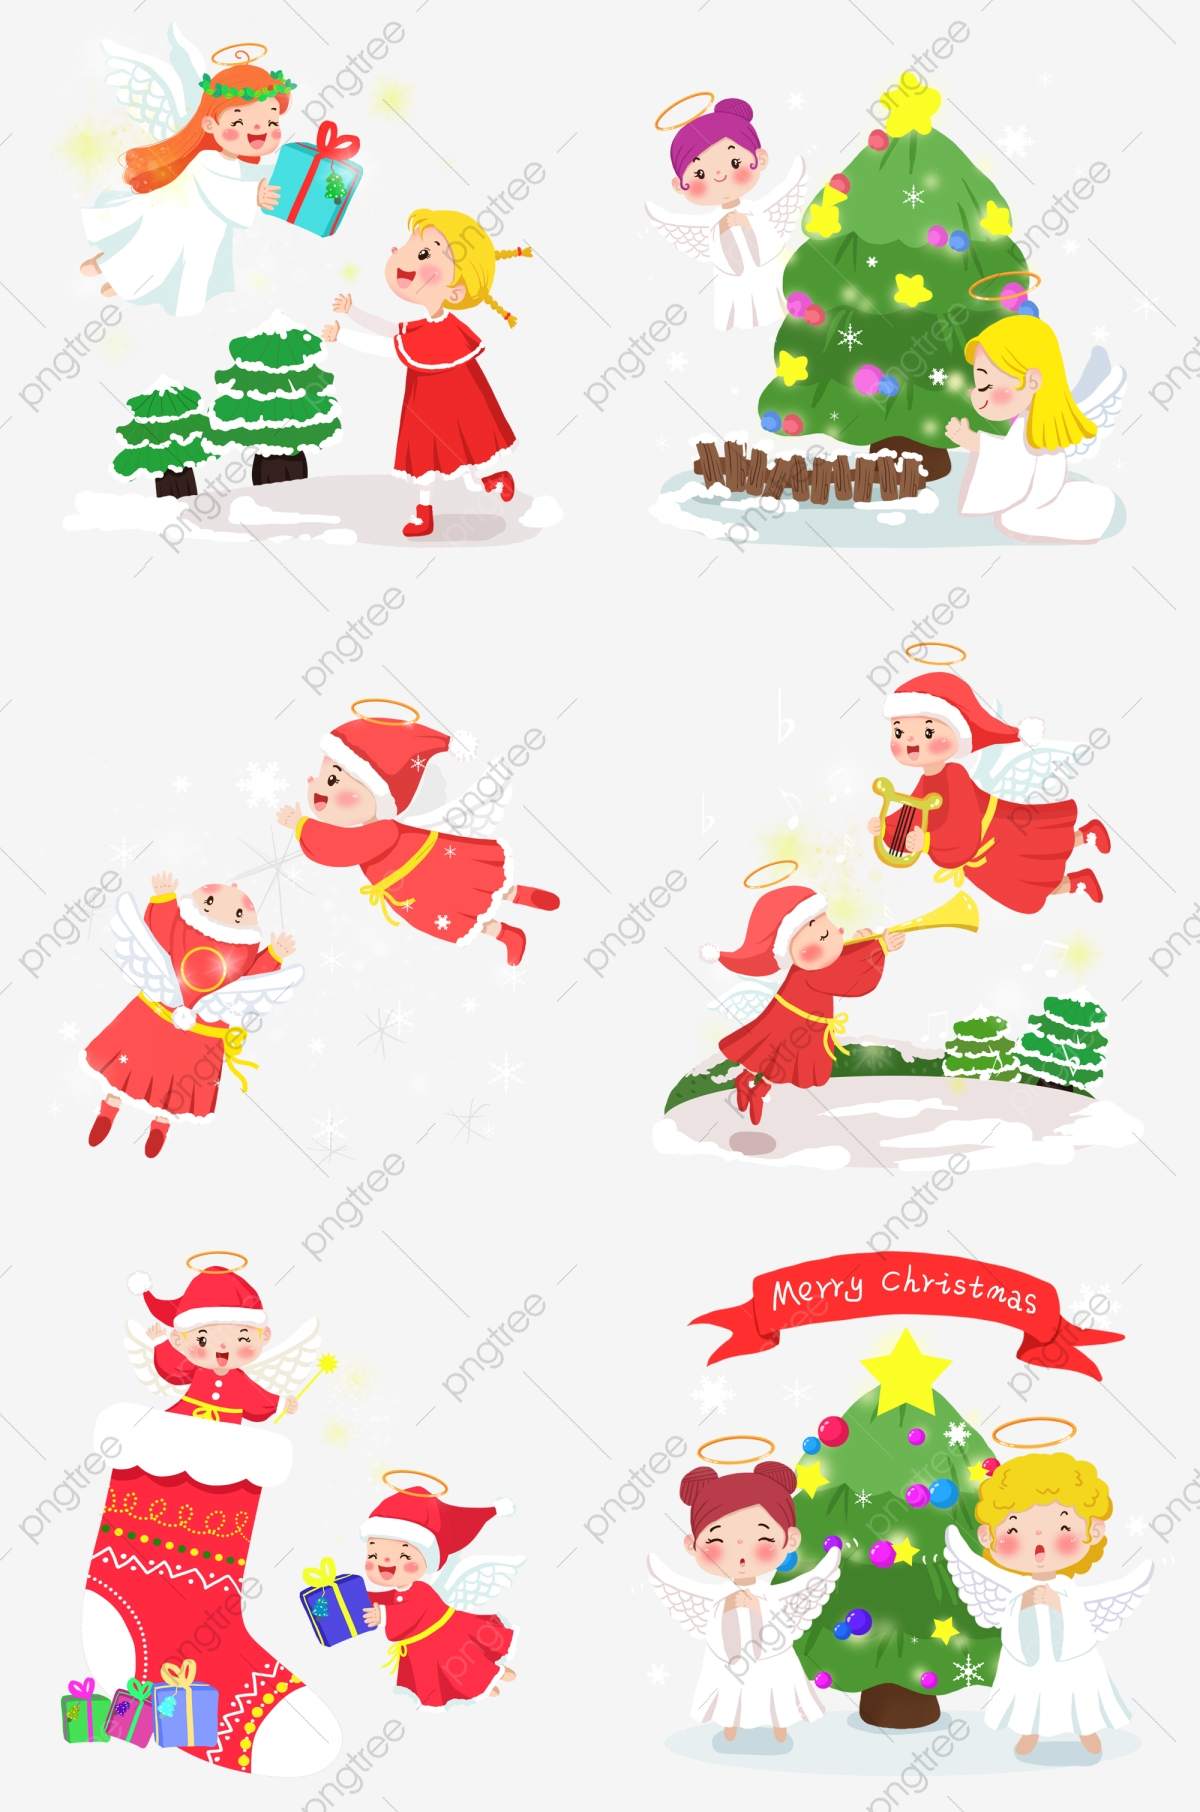 Christmas Giving Clipart.Hand Painted Christmas Angel Christmas Night Angel Giving A